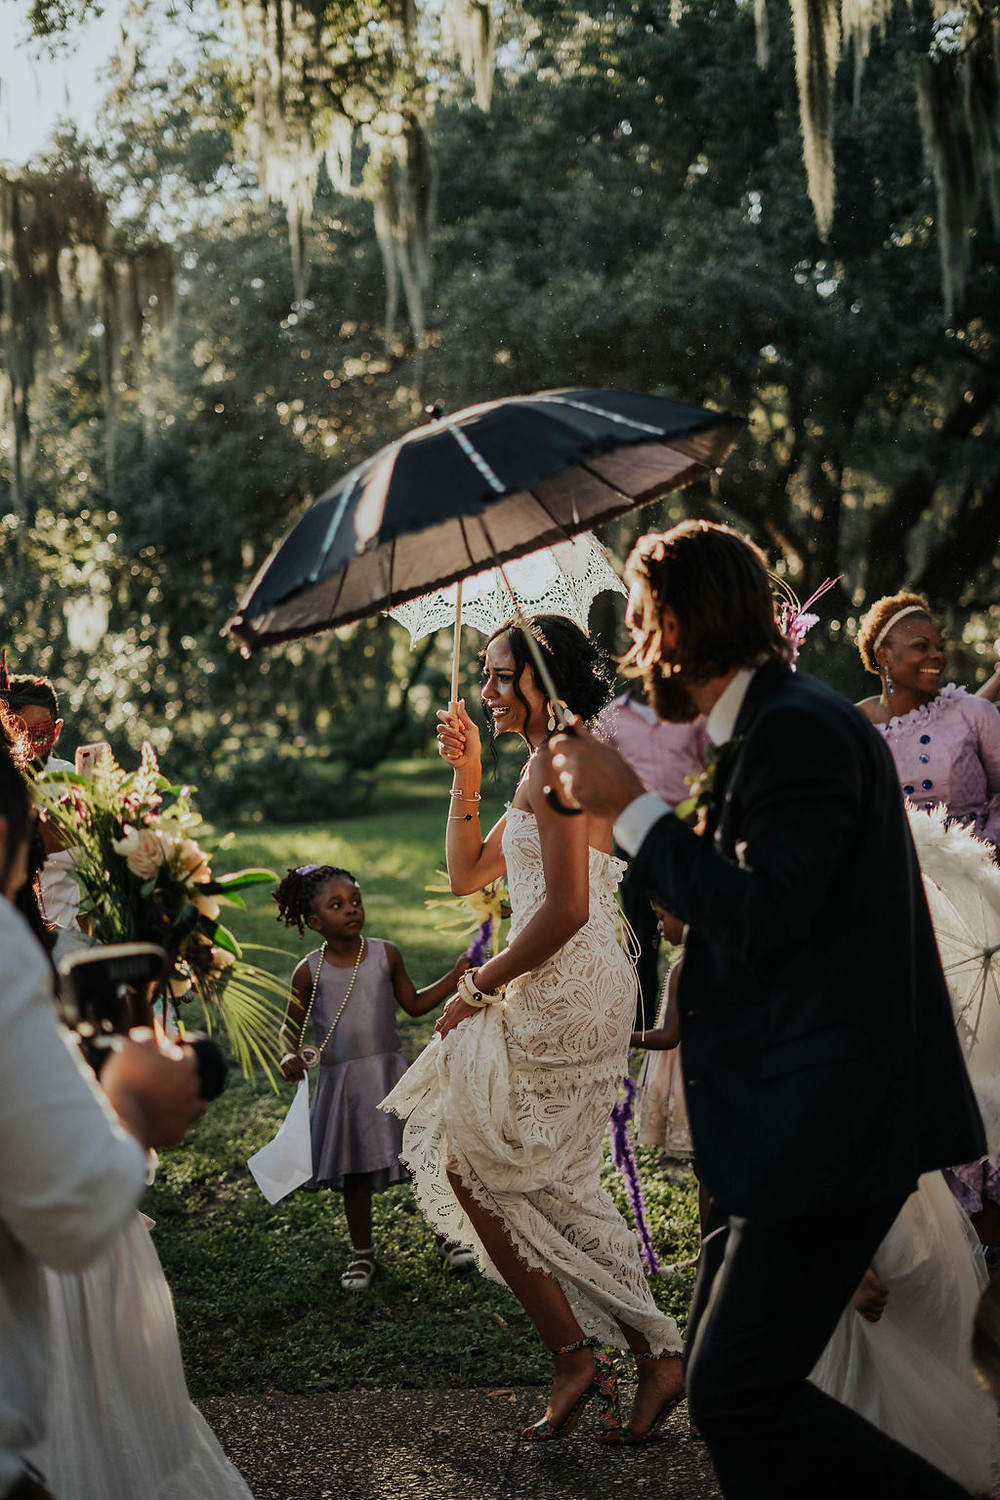 City Park Wedding with Sculpted Films and Lovegood Wedding & Event Rentals in New Orleans, Louisiana with Mismatched Chairs | Vintage Rentals with Rustic, Boho Details